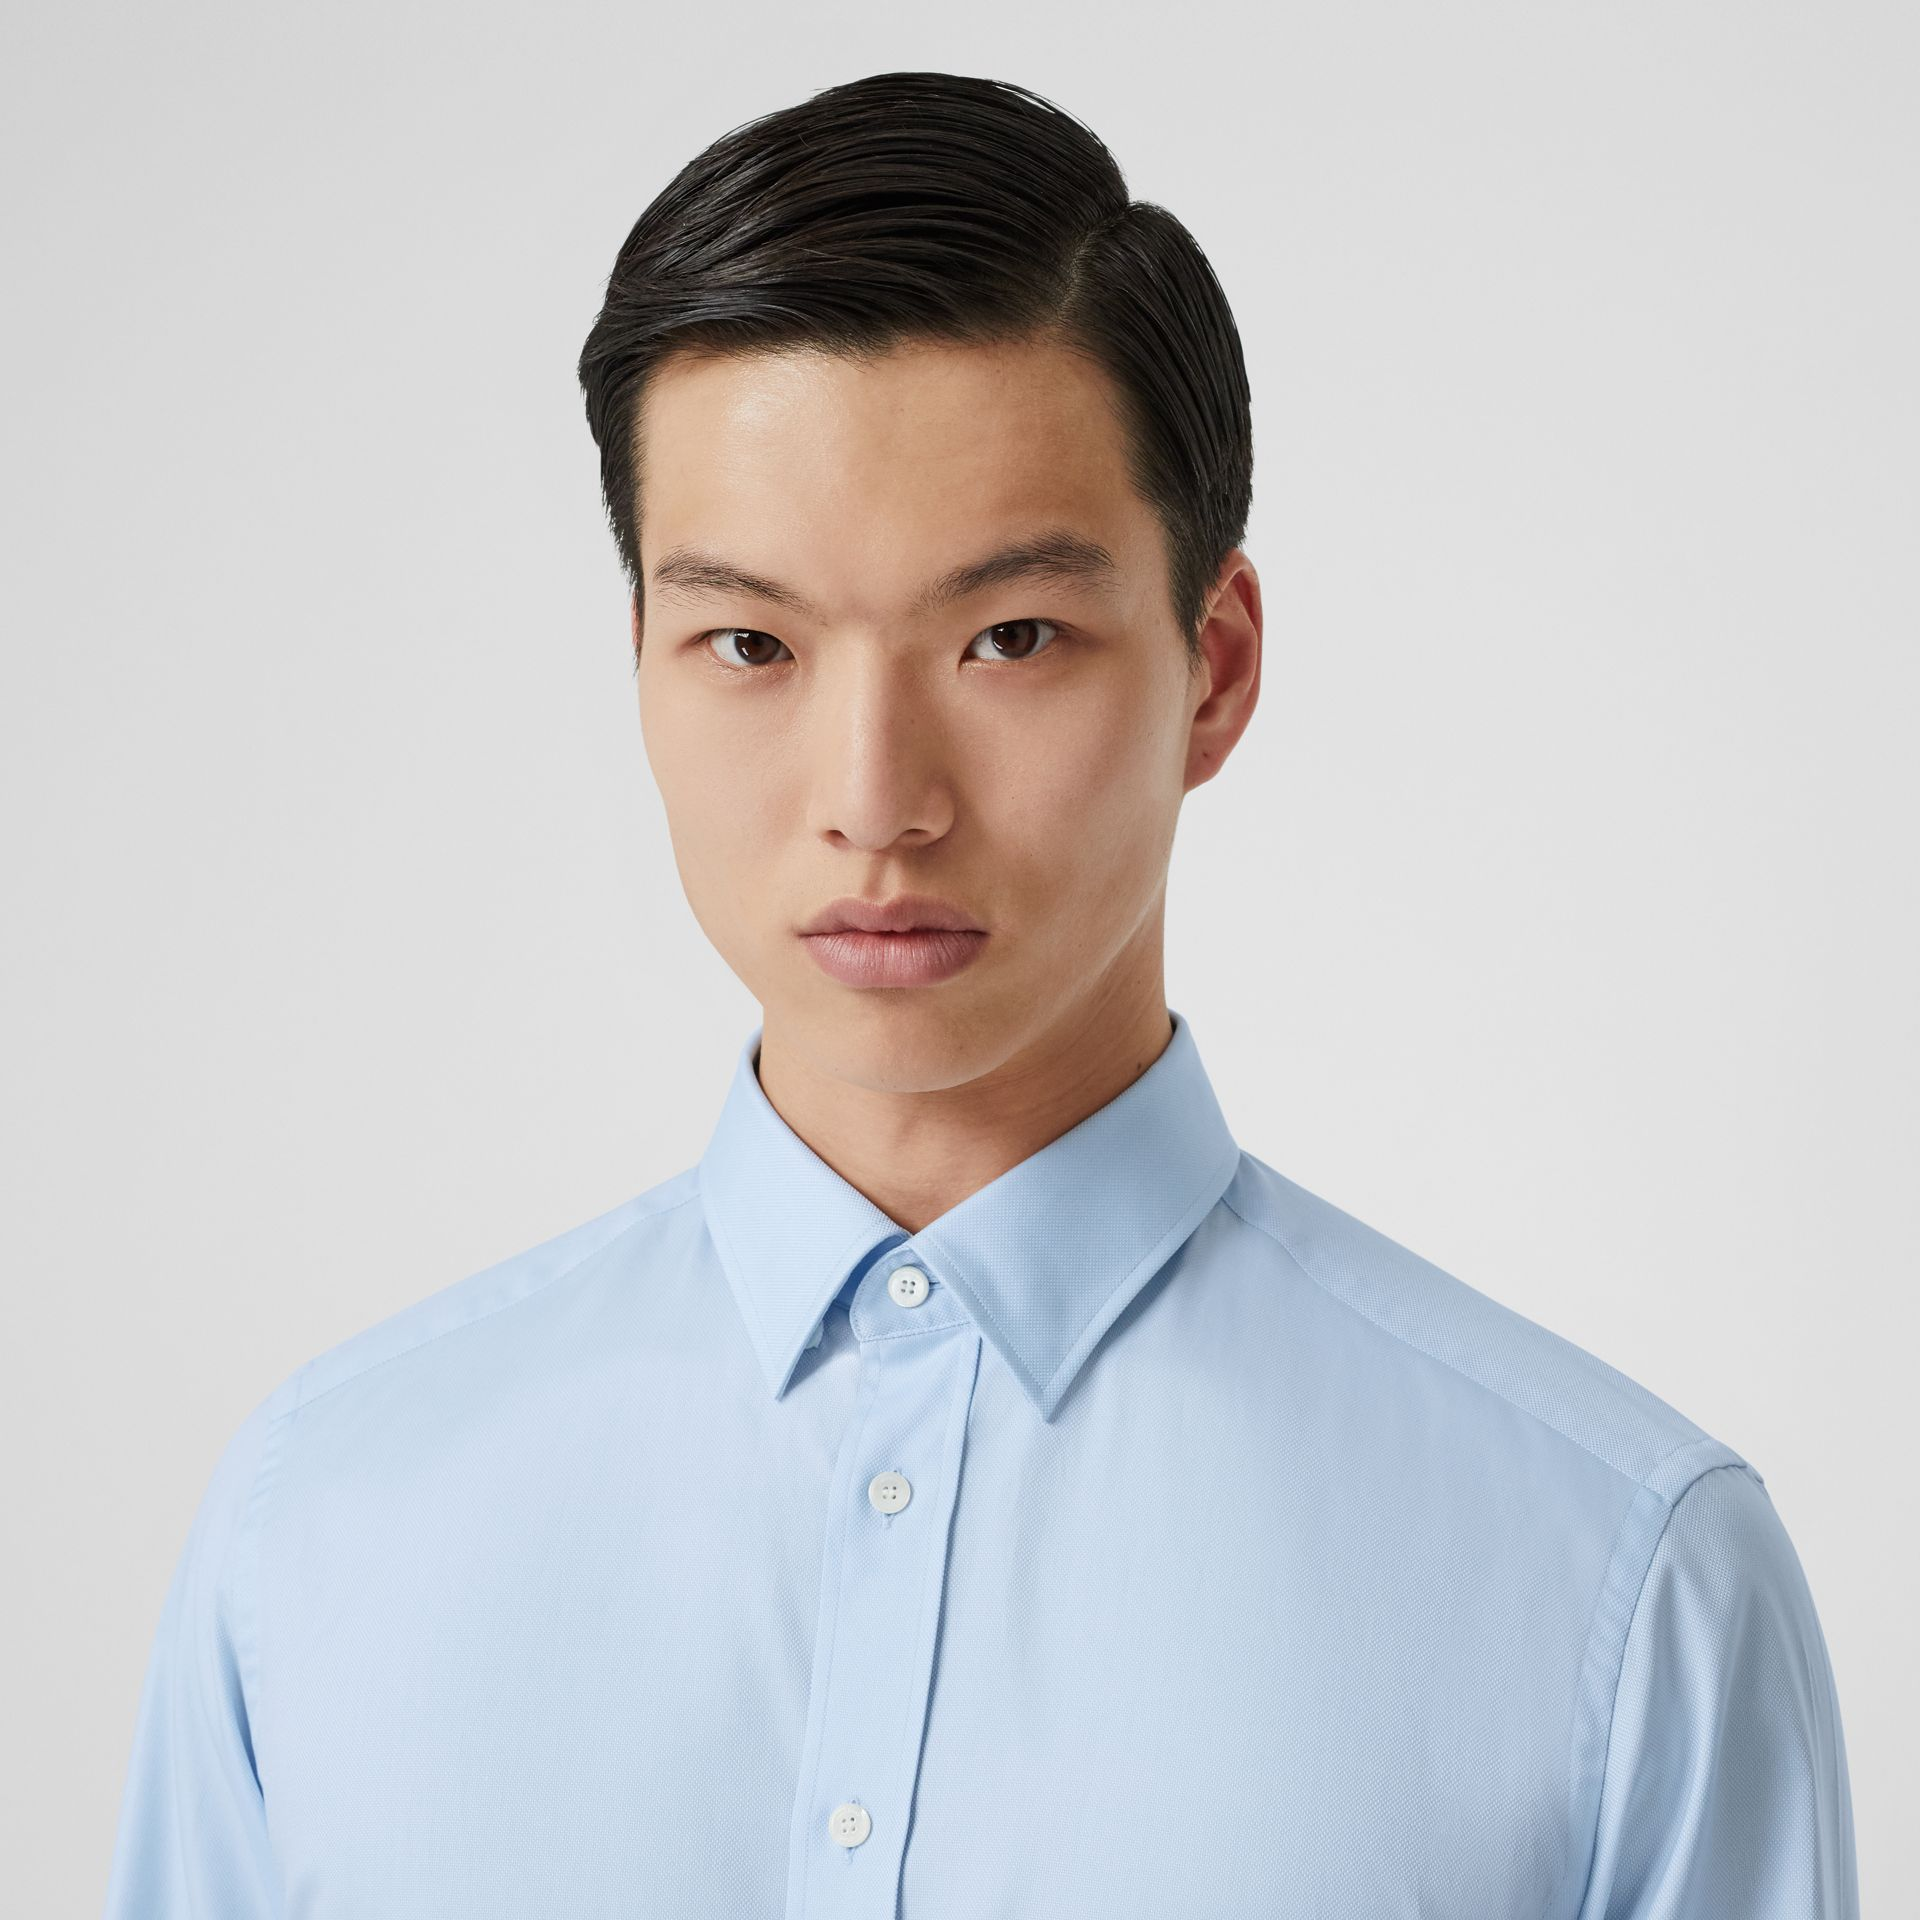 Classic Fit Monogram Motif Cotton Oxford Shirt in Pale Blue - Men | Burberry - gallery image 1